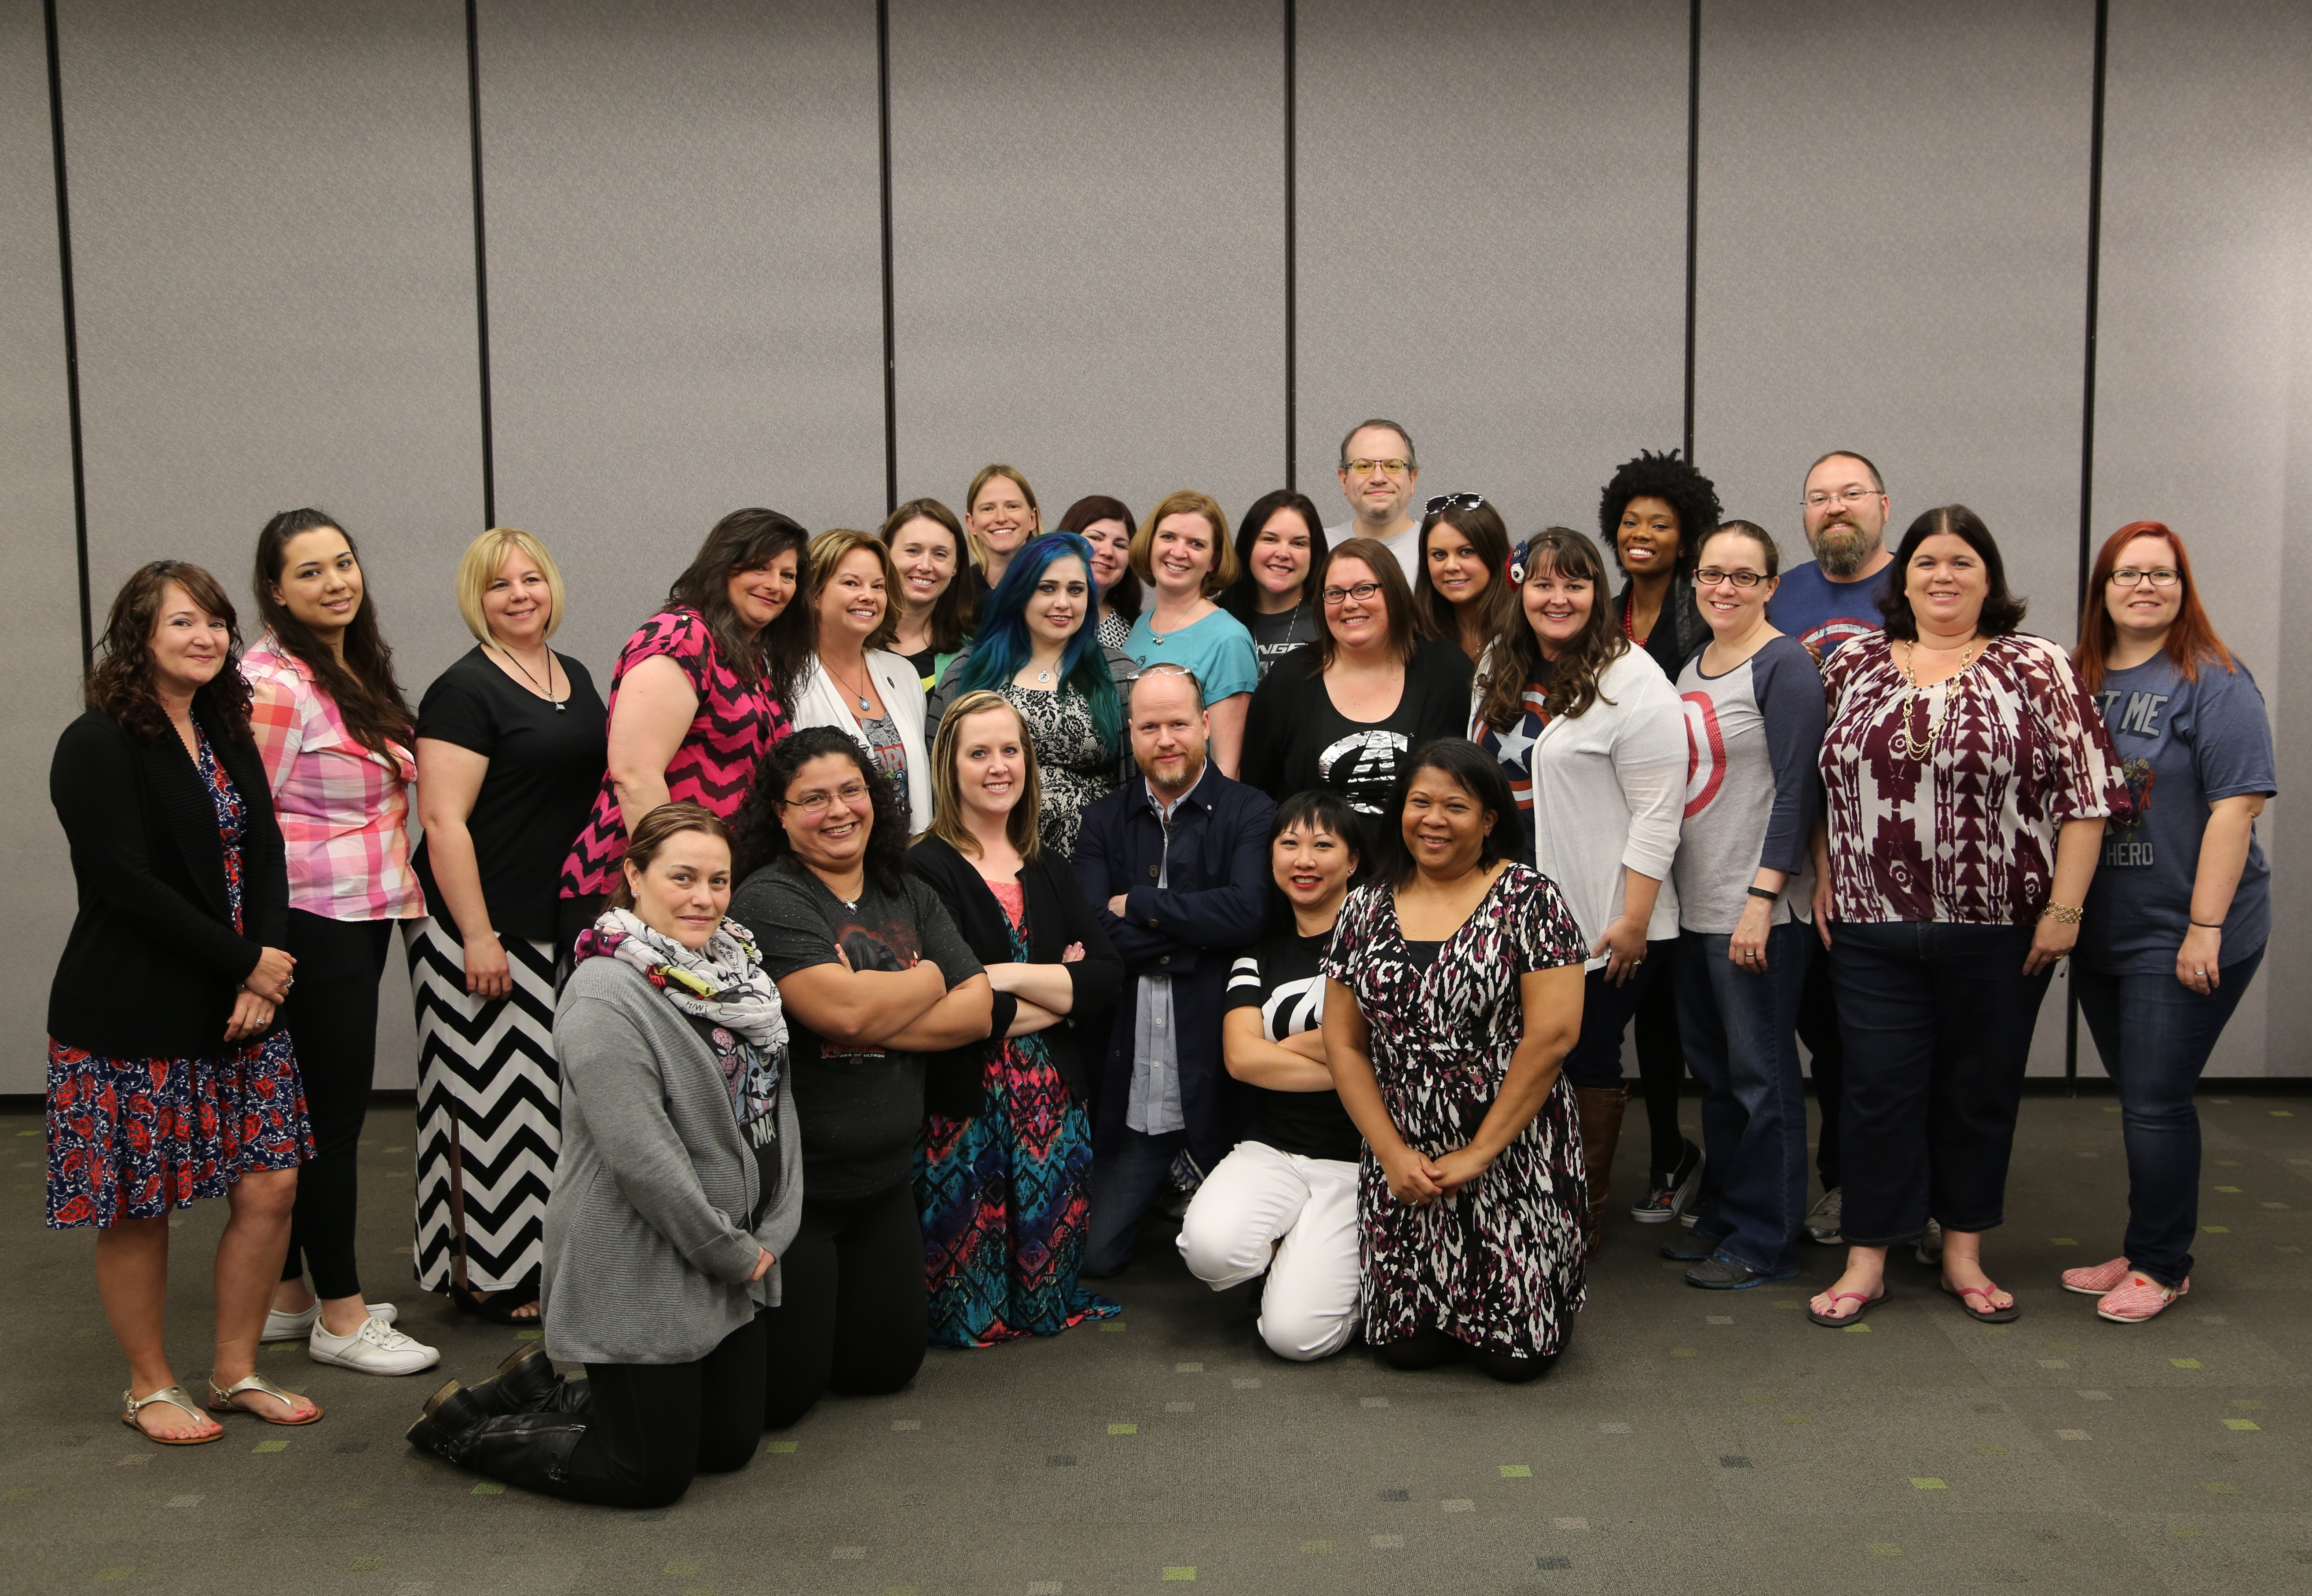 #AvengersEvent Interview with The Master – Joss Whedon